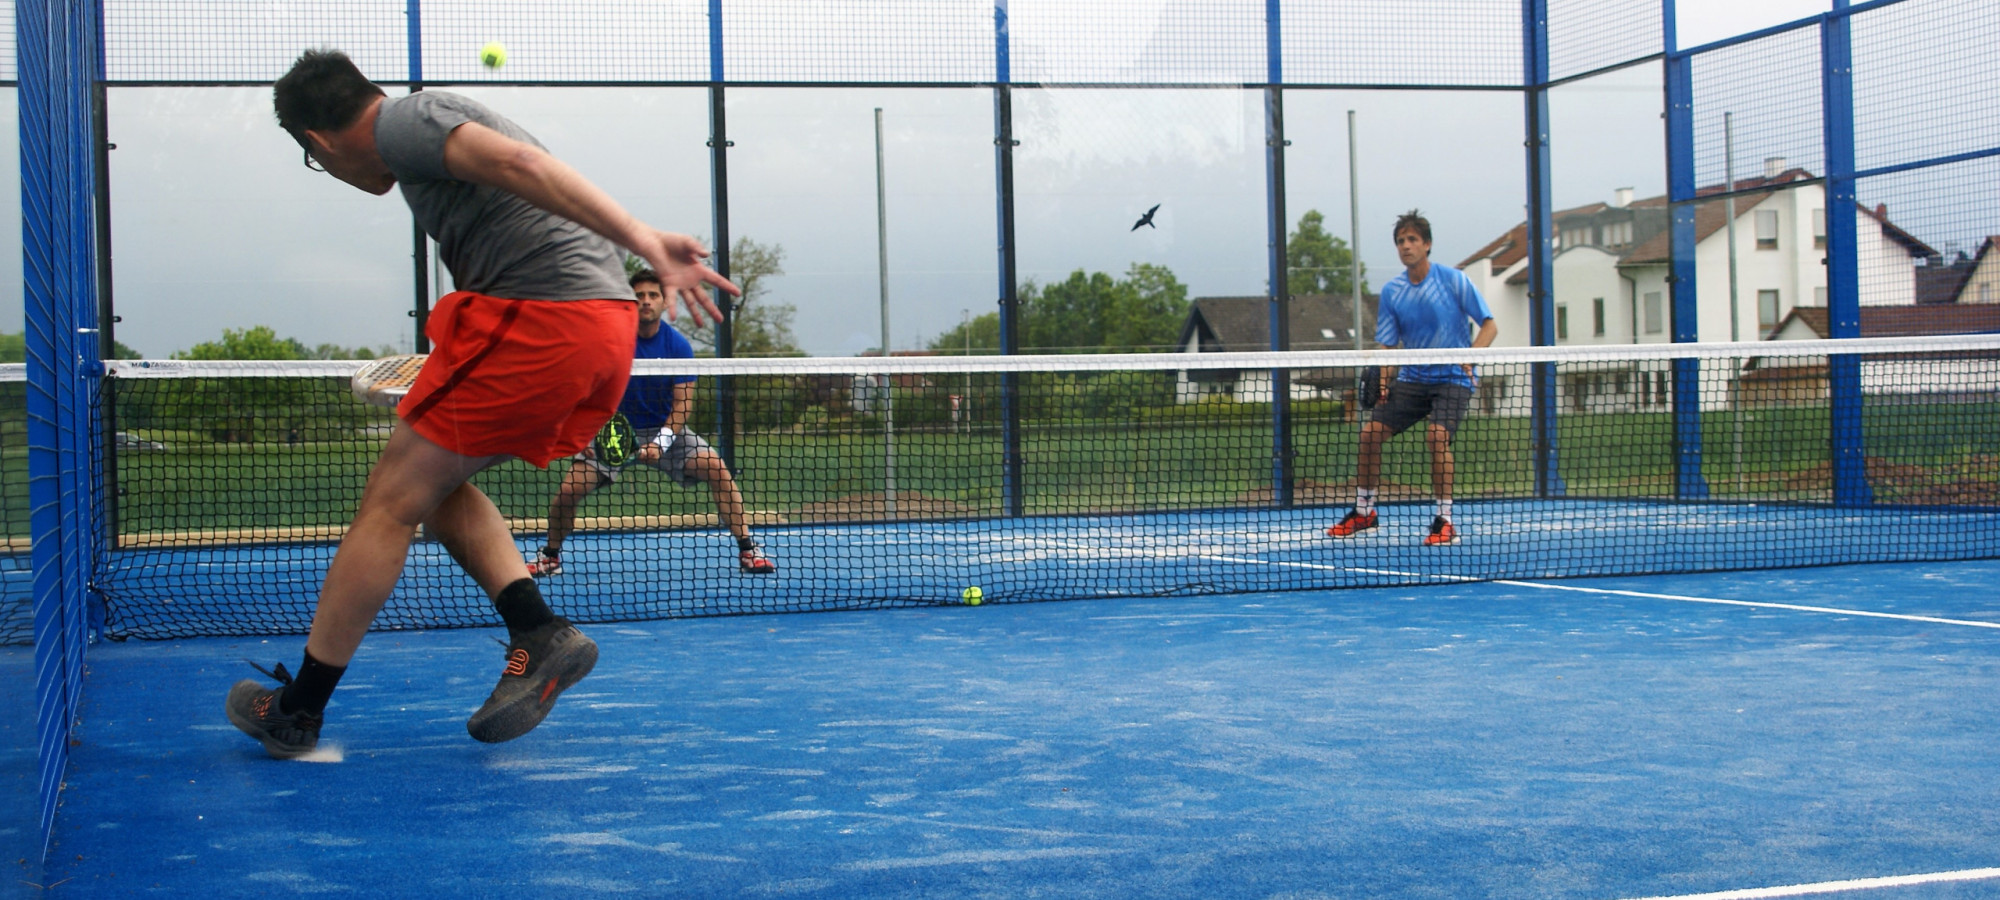 TCP Padel in Action